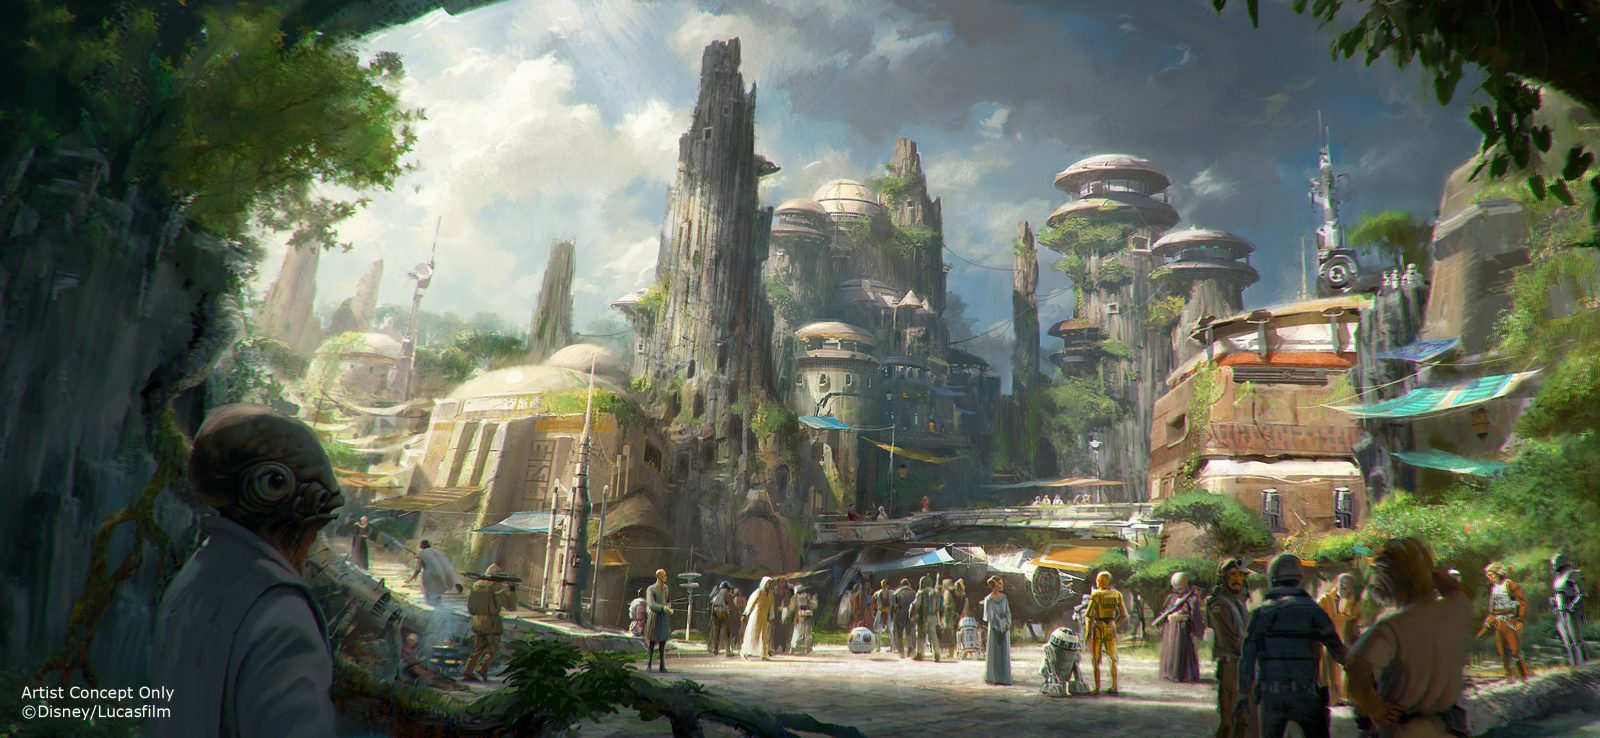 Opening dates for Disney Star Wars Land has been announced!